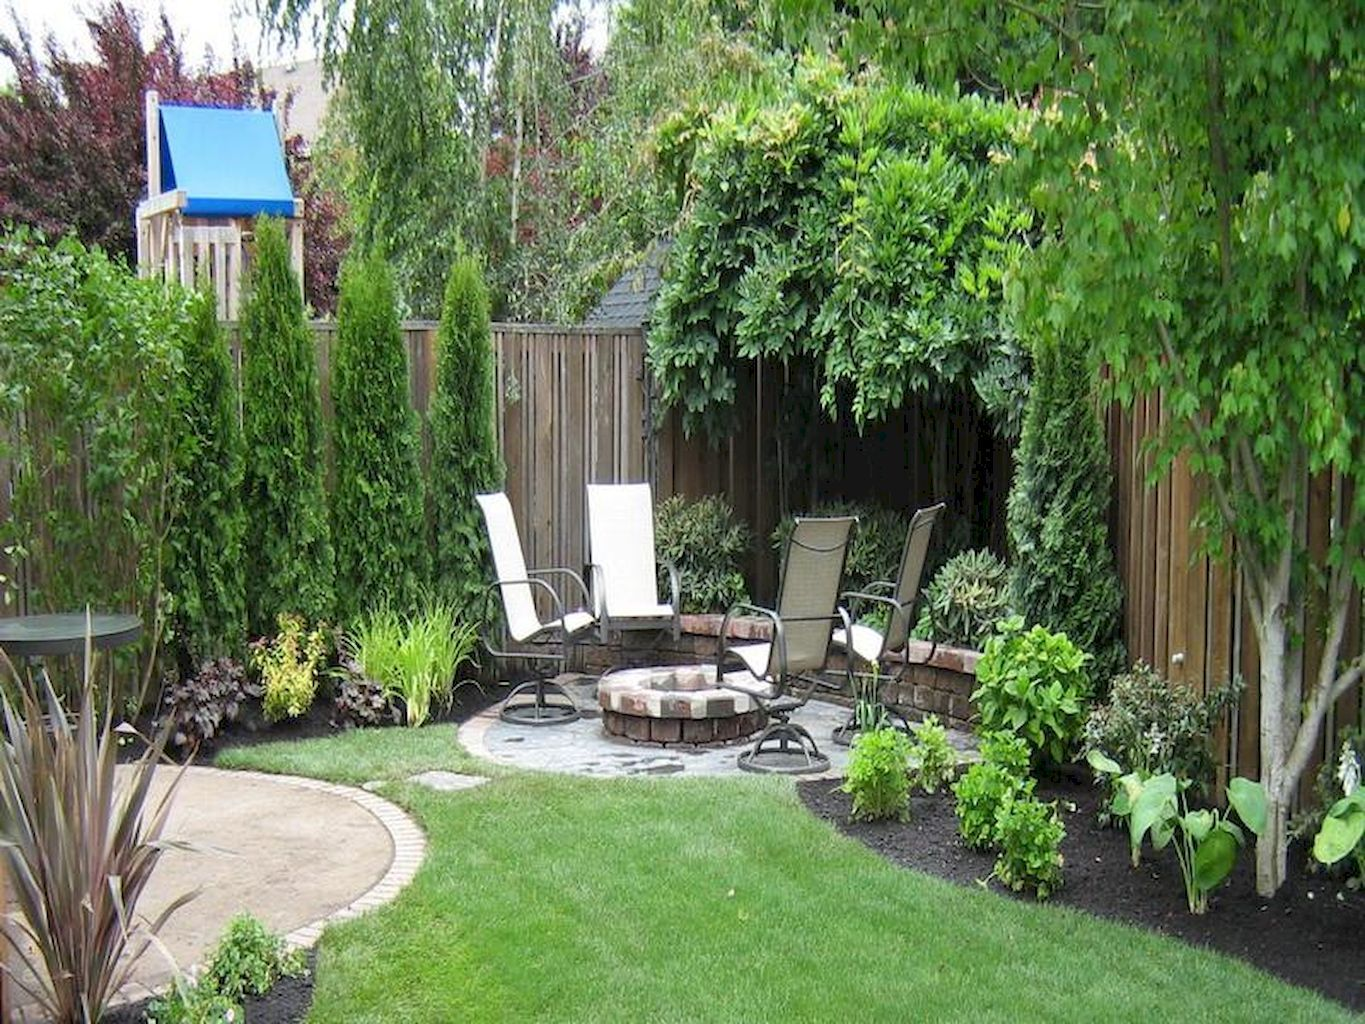 Nice 80 Small Backyard Landscaping Ideas on a Budget https ...